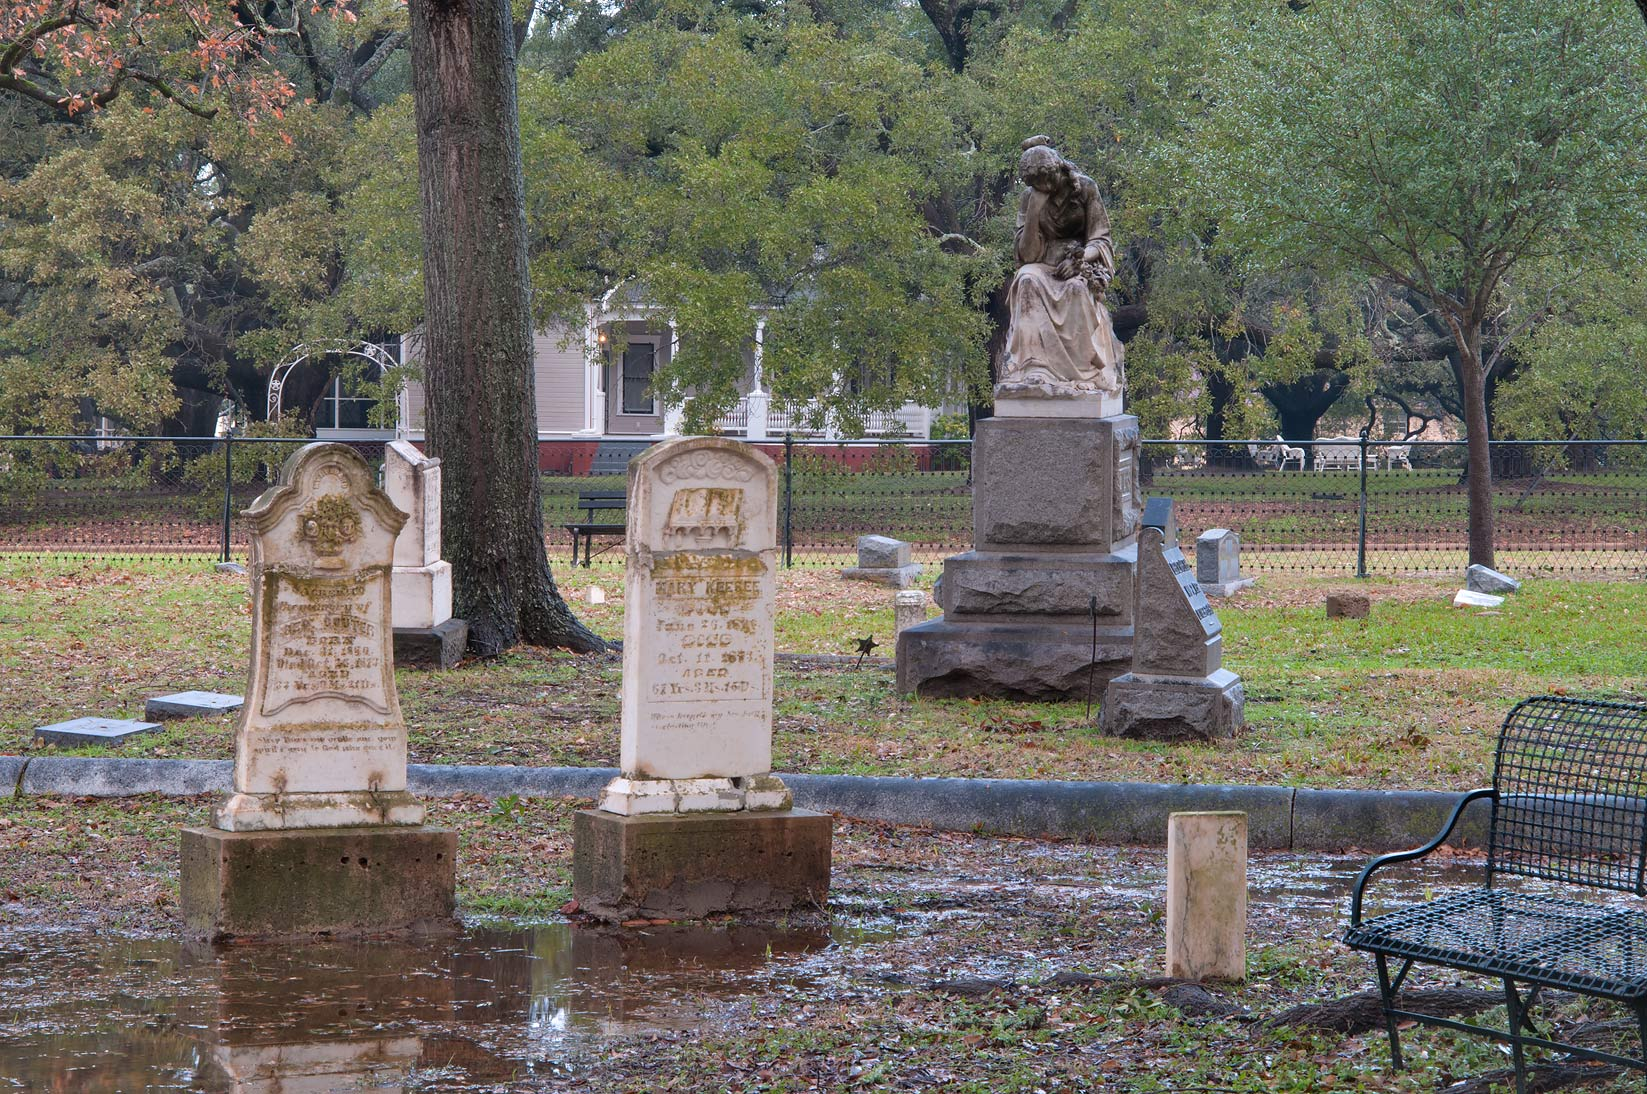 Tombs of Calvert Cemetery at rain. Calvert, Texas